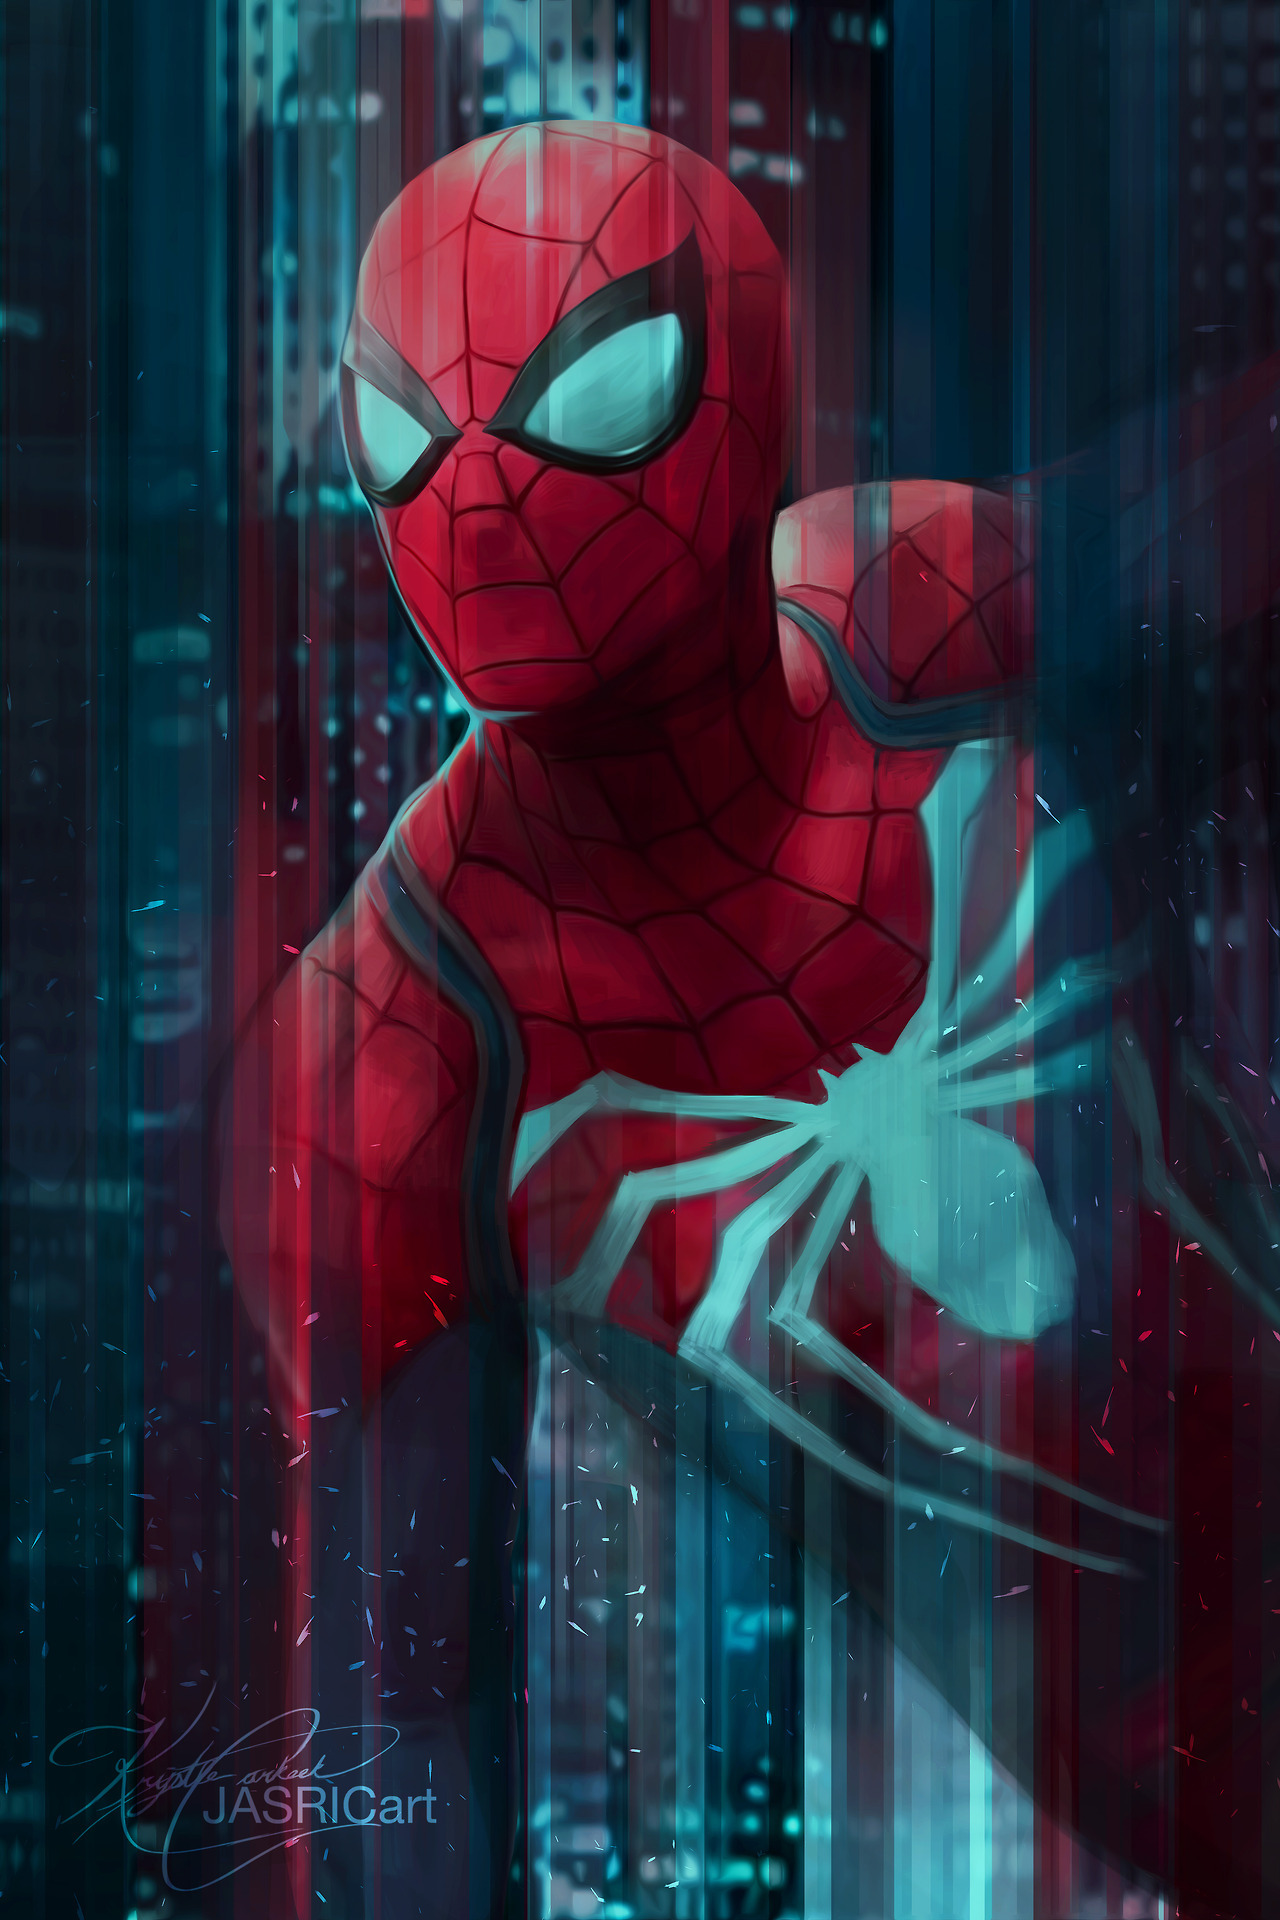 Super Hero Hd Wallpaper Posted By Ethan Johnson